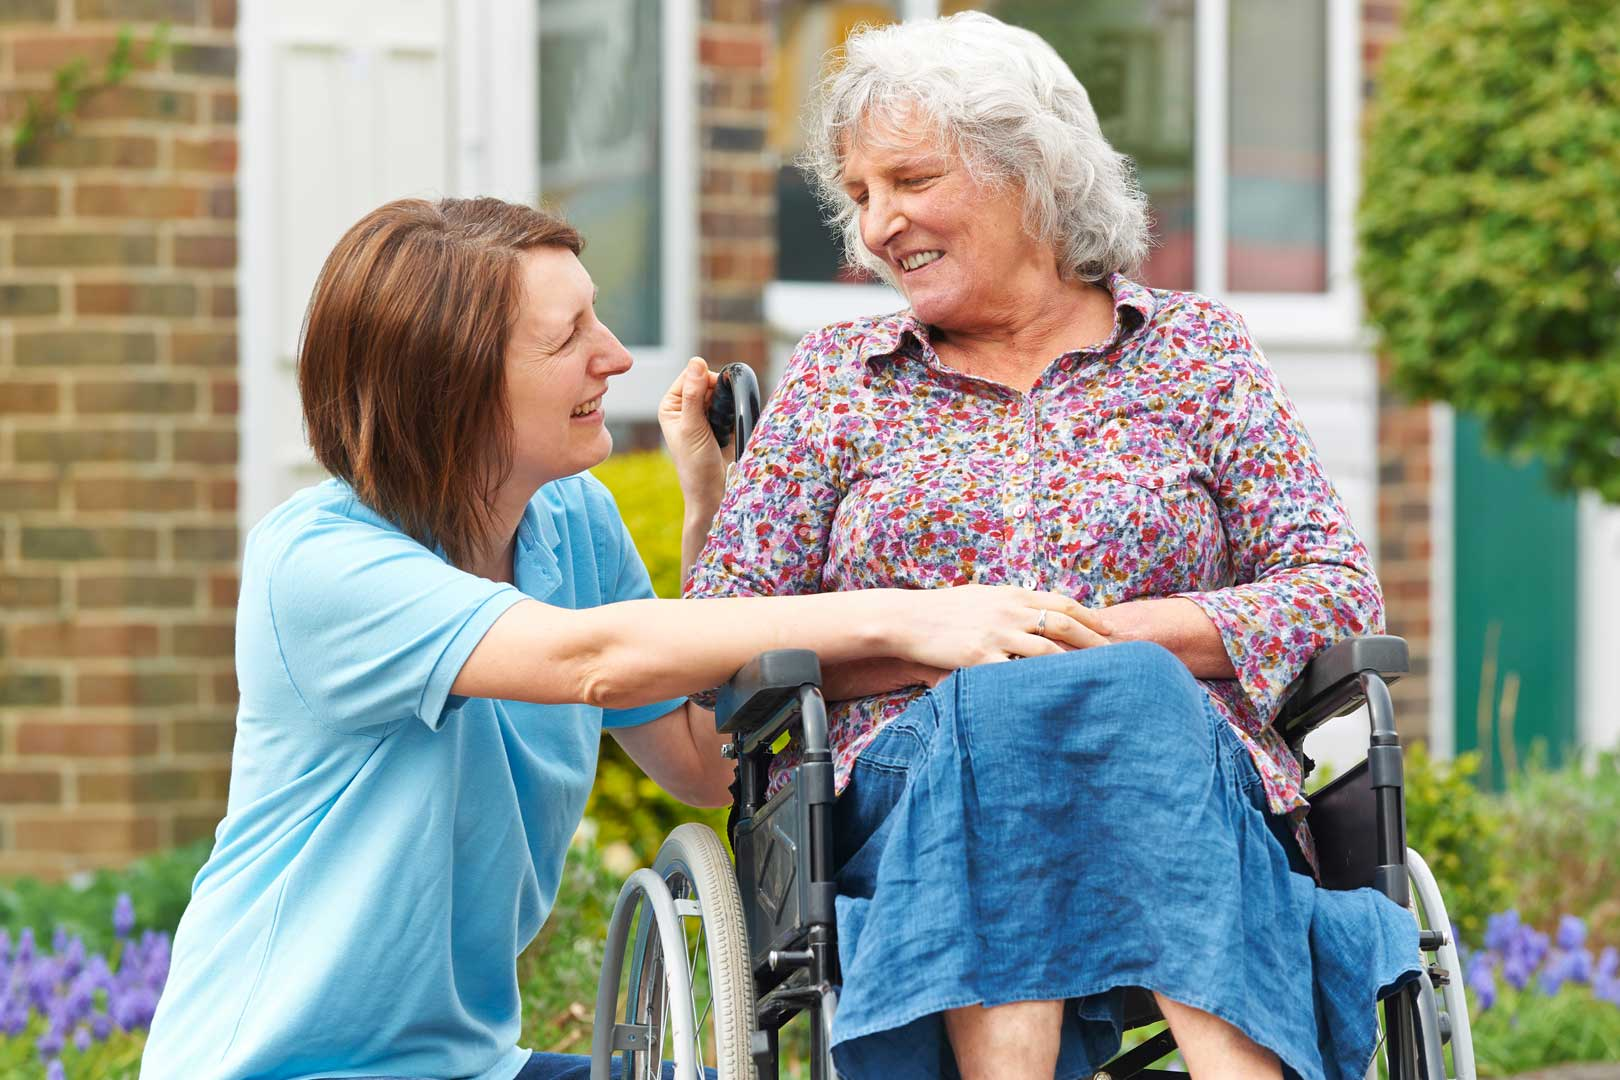 Carer with client - looking at each other